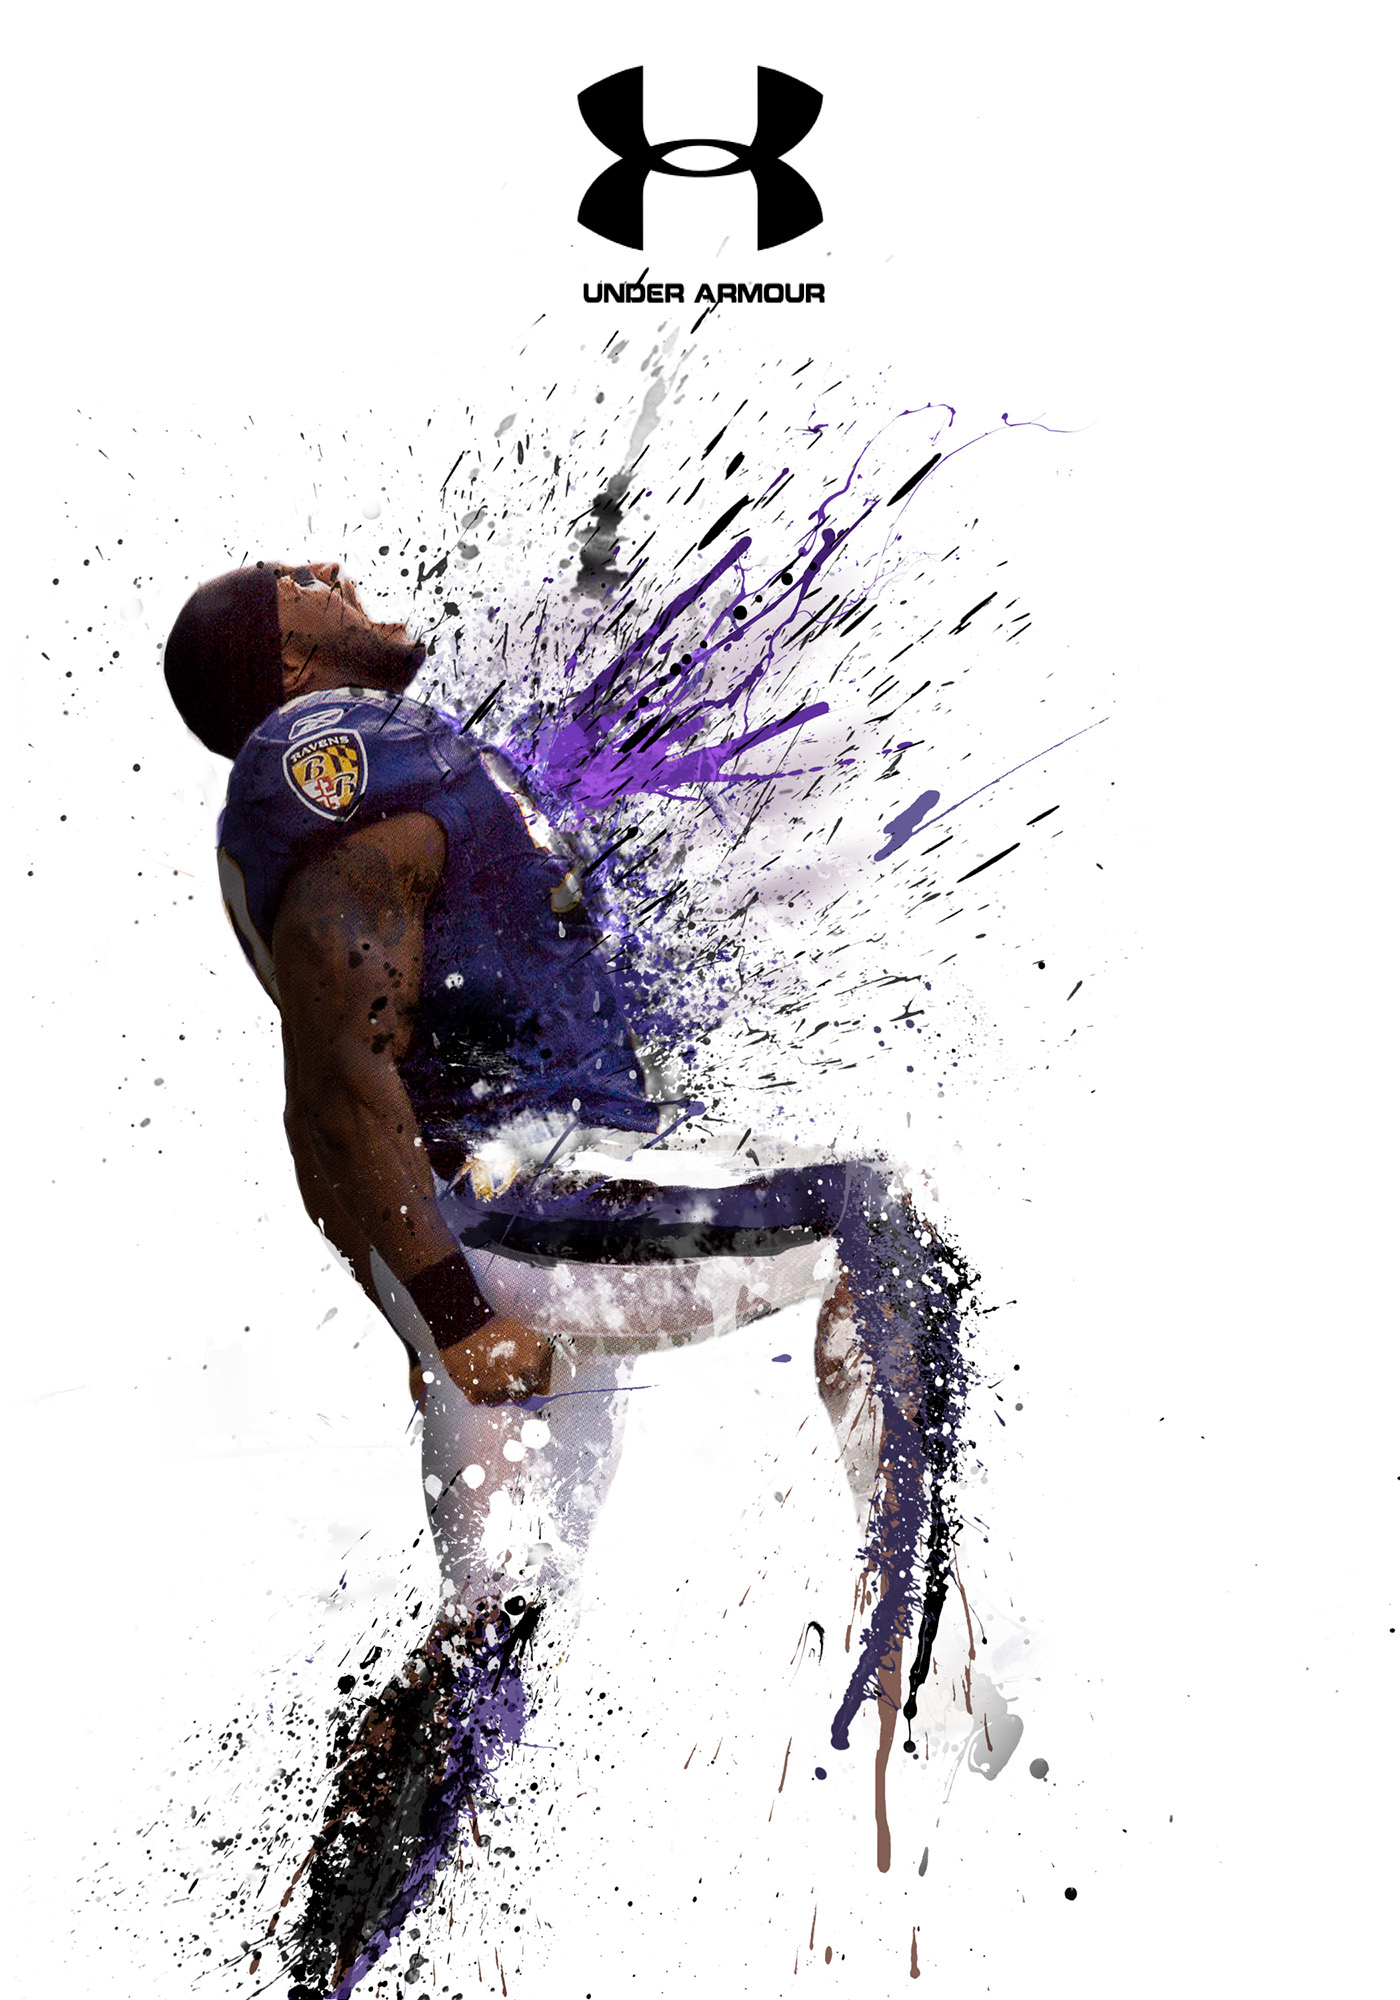 Filter Photoshop Ray Lewis Explosion Mini-poster On Behance